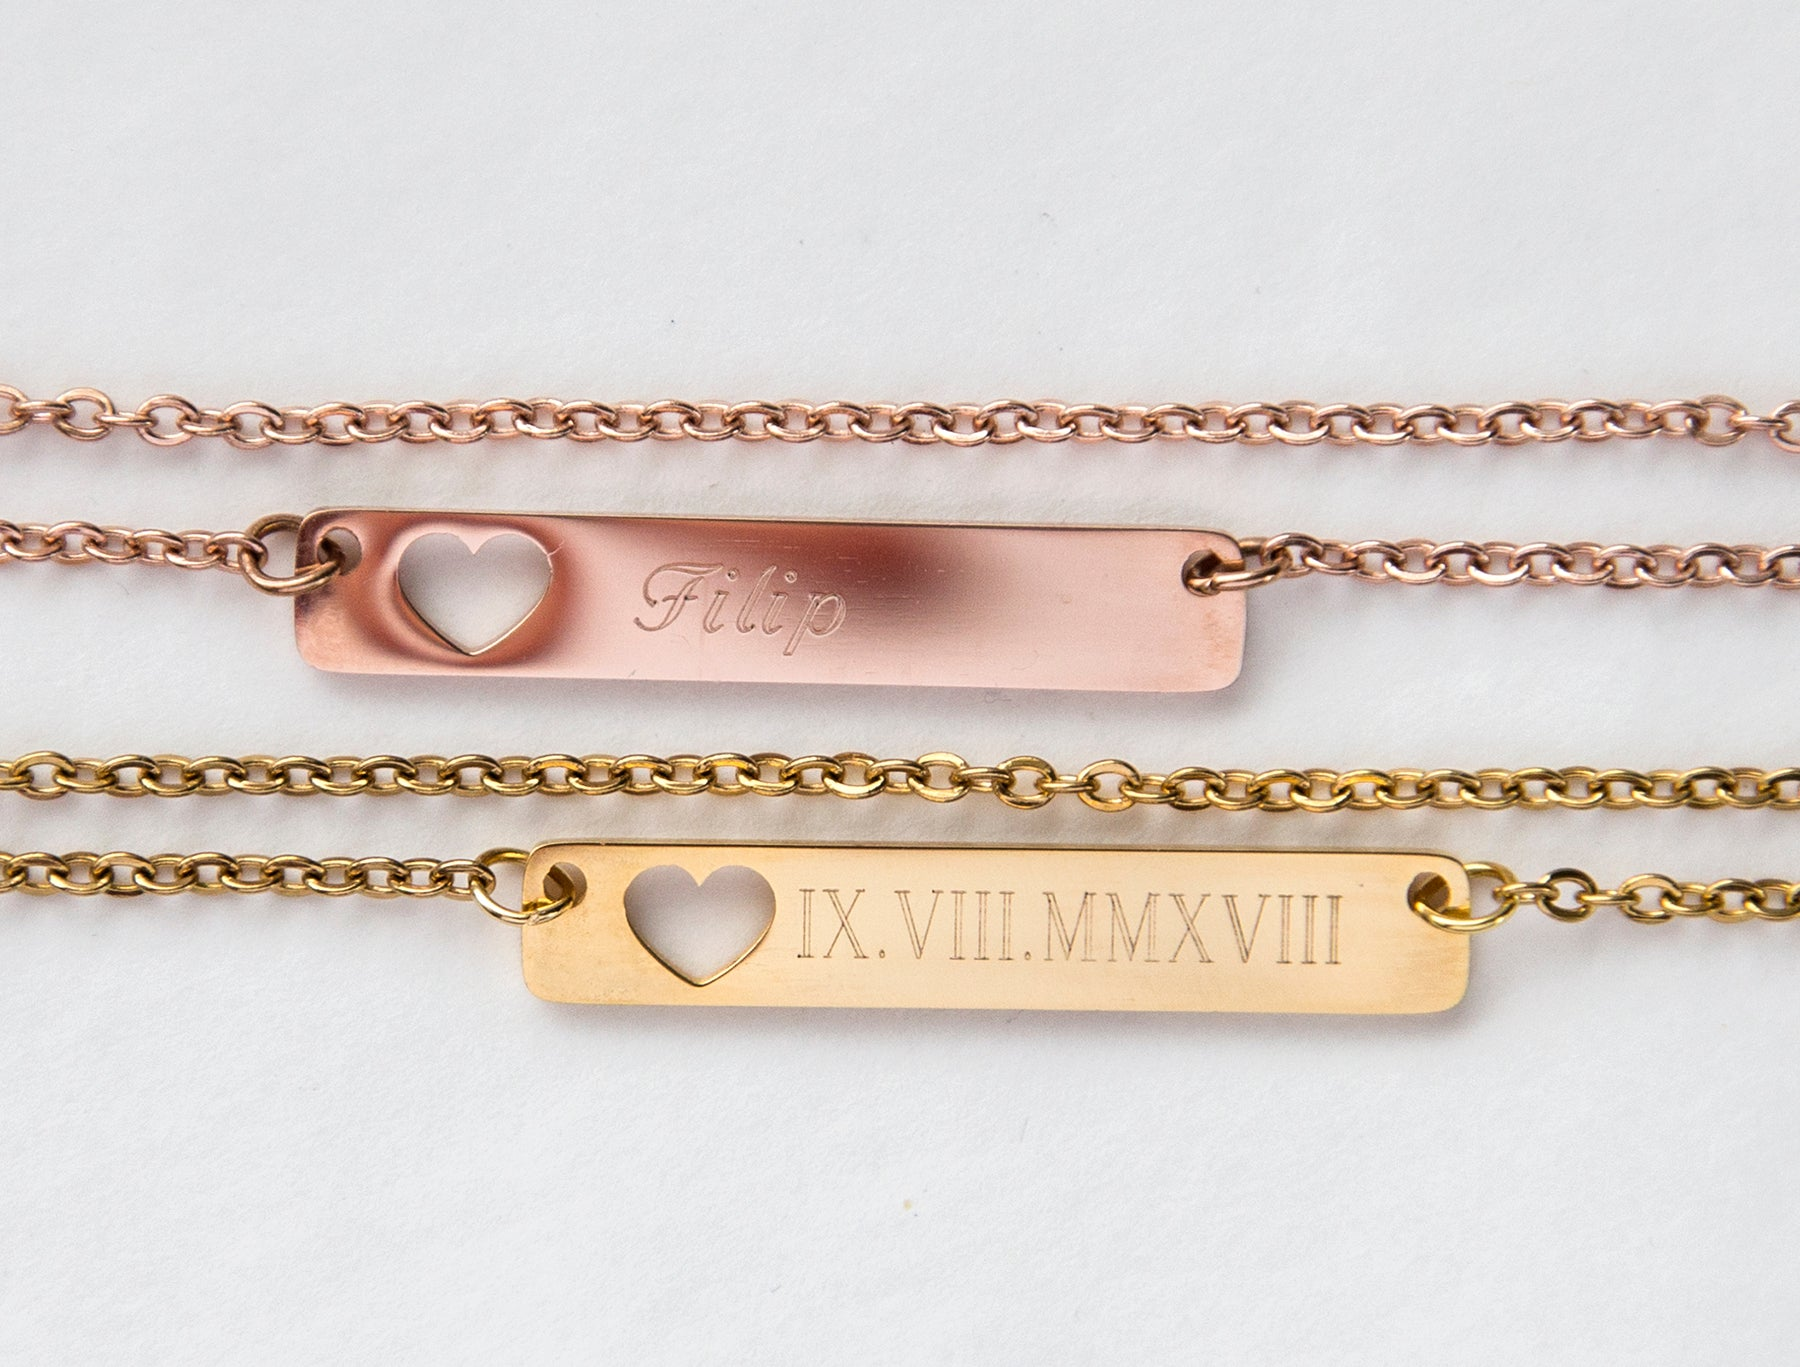 Hollow Heart Engraved Bar Pendant - 1 or 2 side custom engraving, rose gold, gold